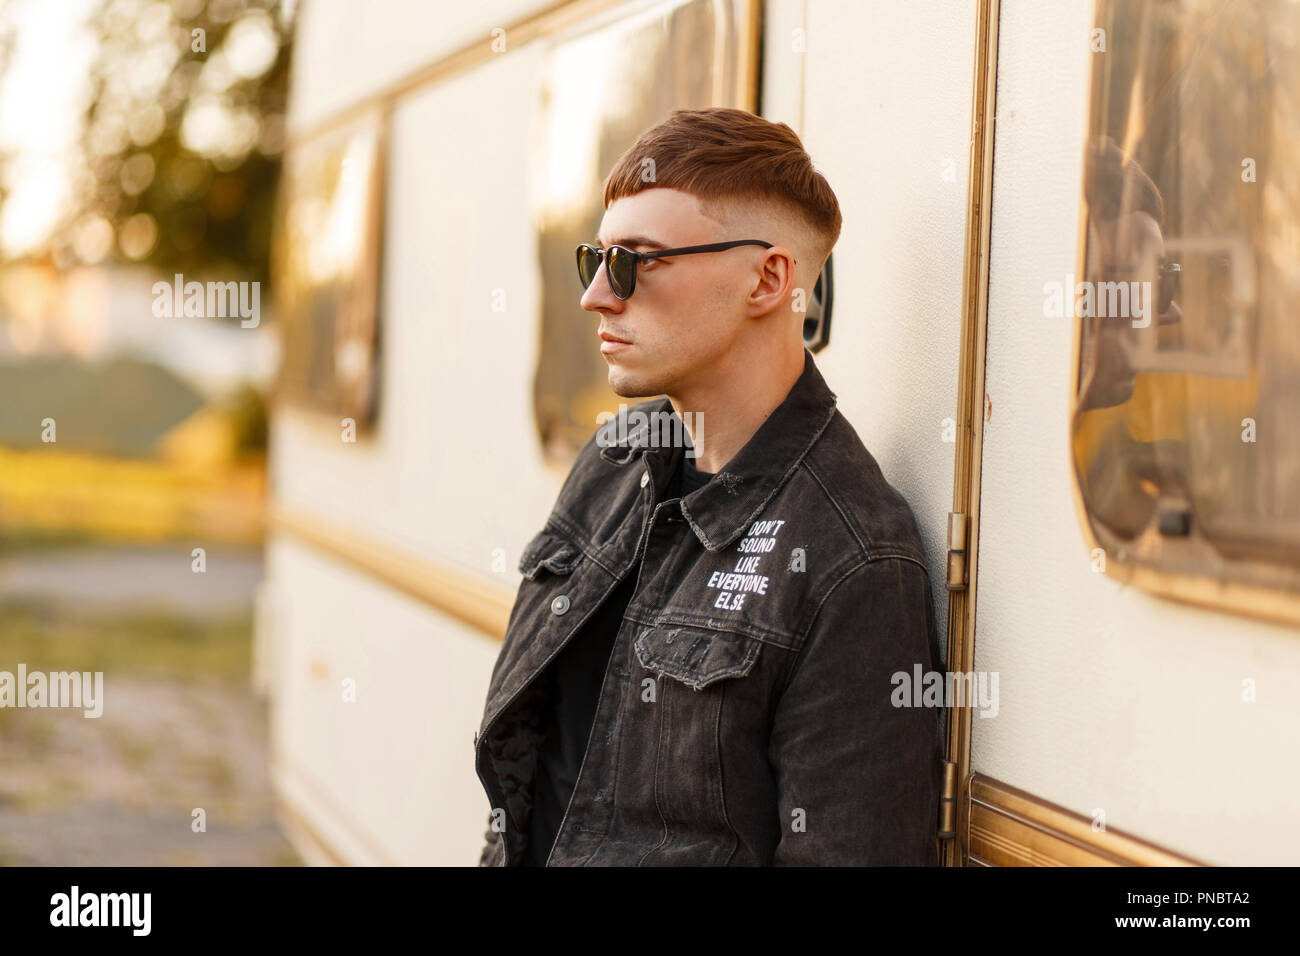 Fashionable Model Man With Sunglasses In A Black Denim Jacket And A